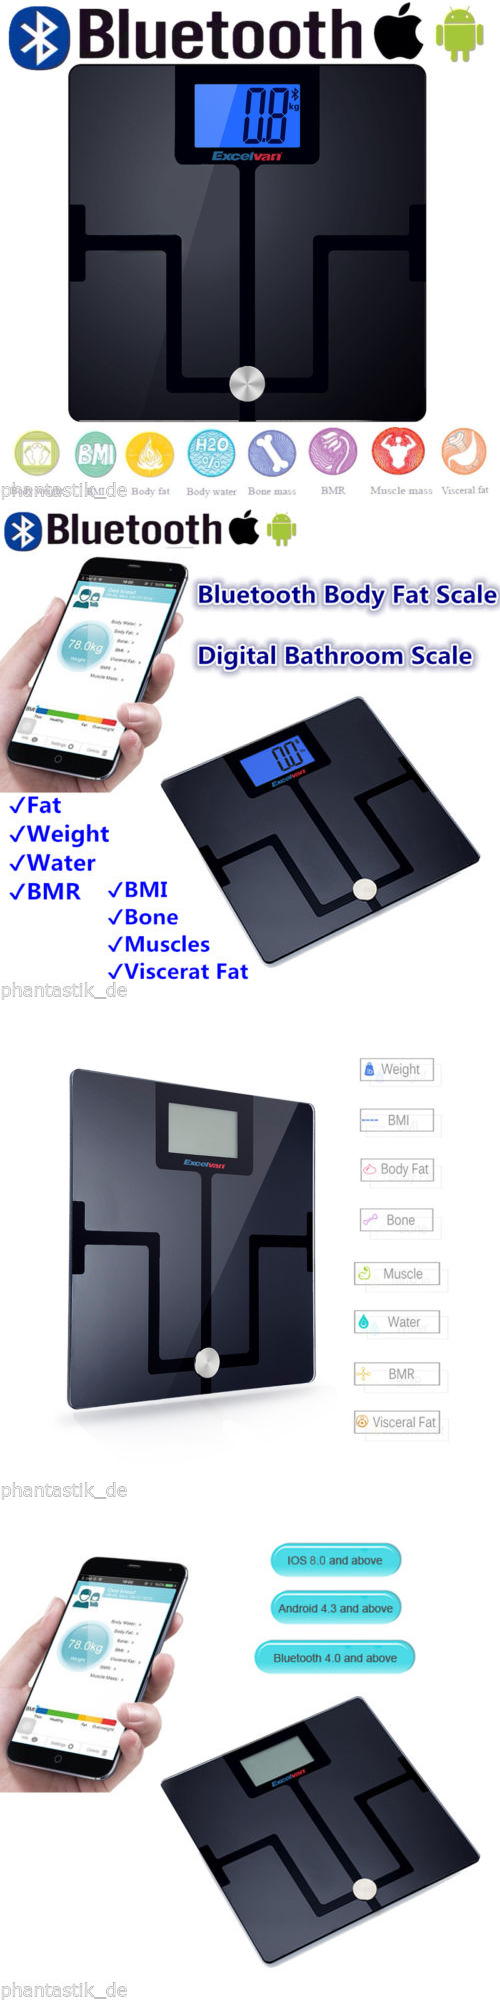 Bmi bathroom scales - Scales Smart Bluetooth Body Fat Scale Digital Bathroom Scale Bmi Bmr Weight Water Mass